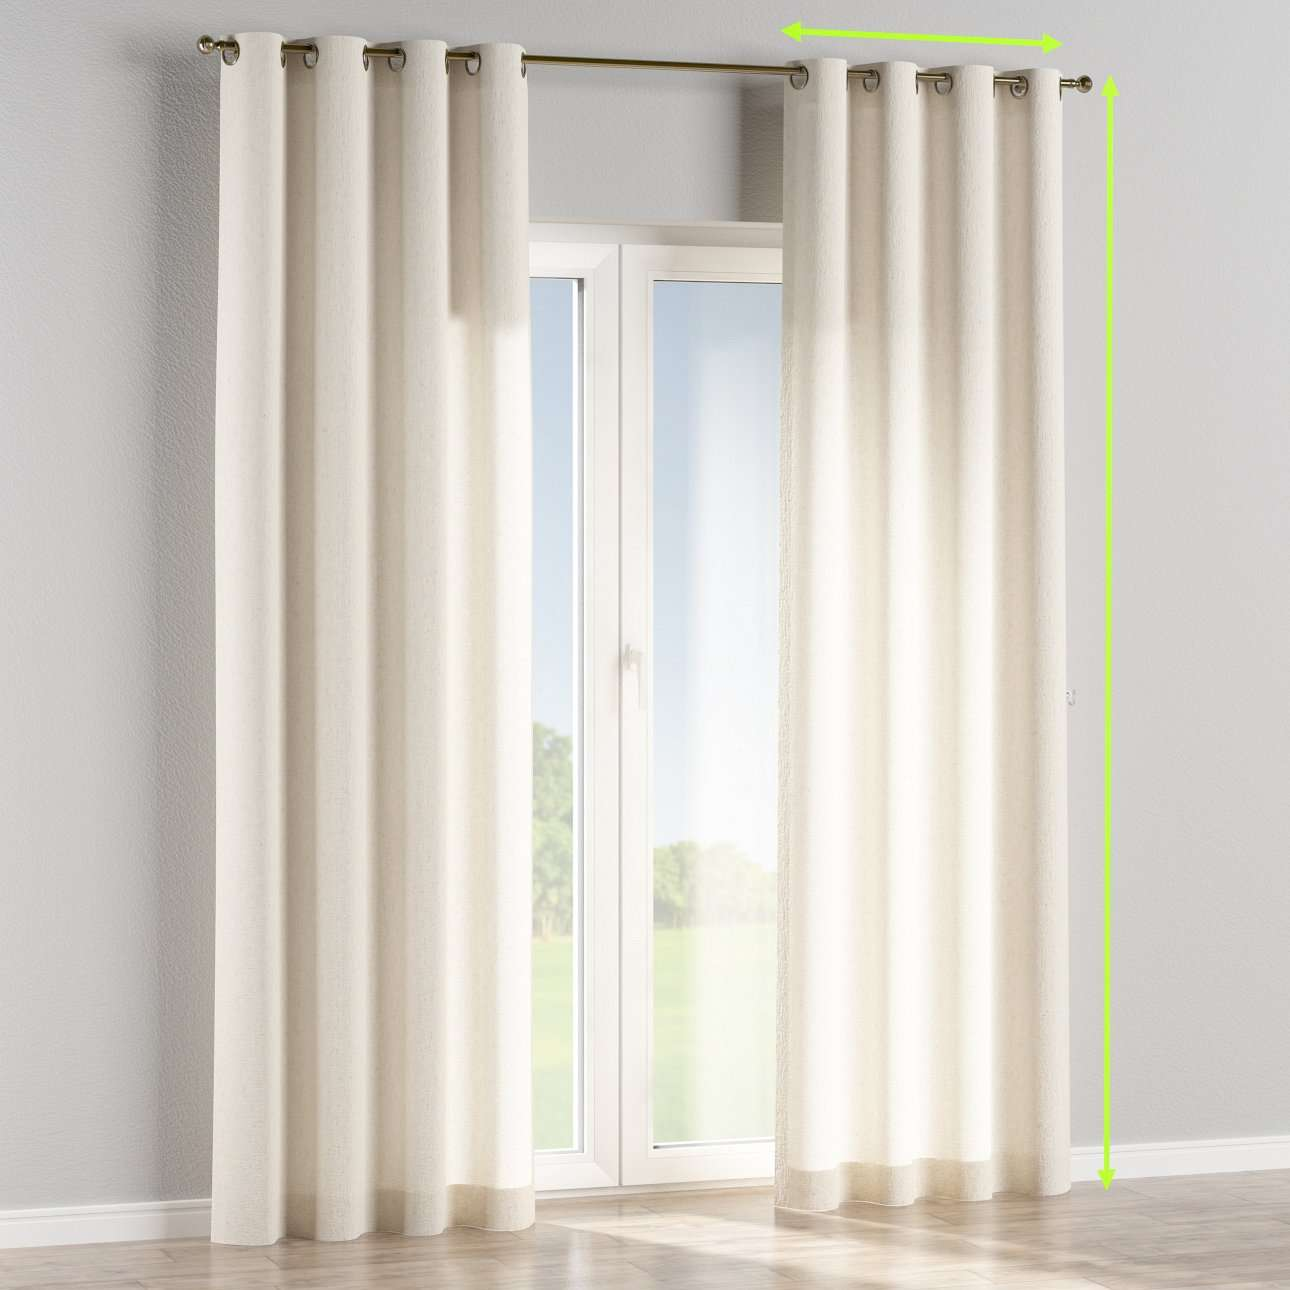 Eyelet lined curtains in collection Loneta , fabric: 133-01